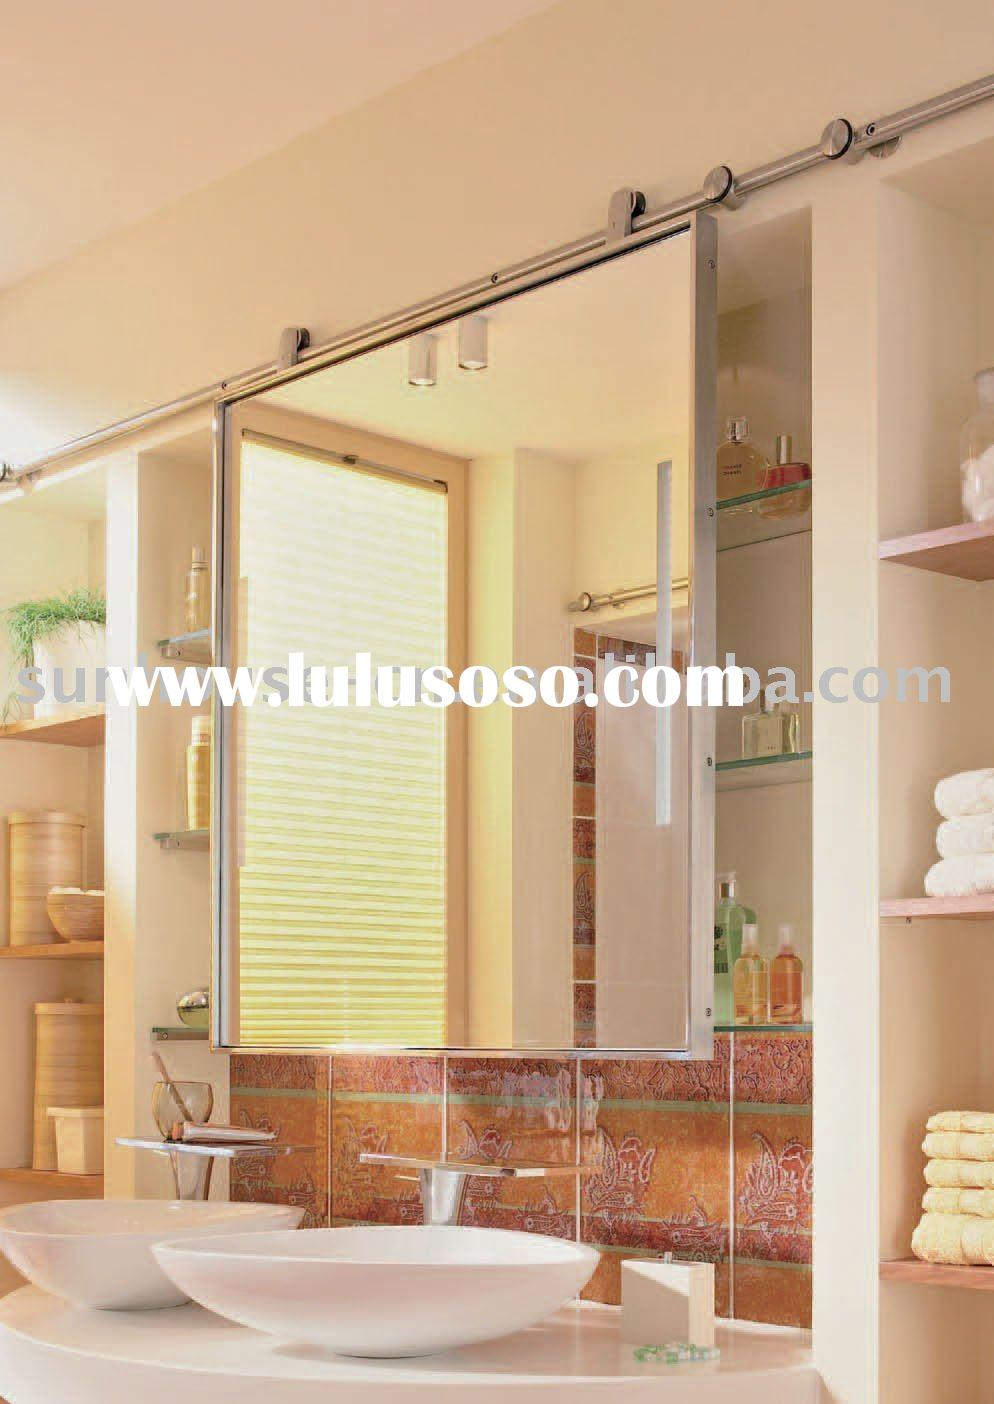 mirror door sliding doors interior closet doors the www